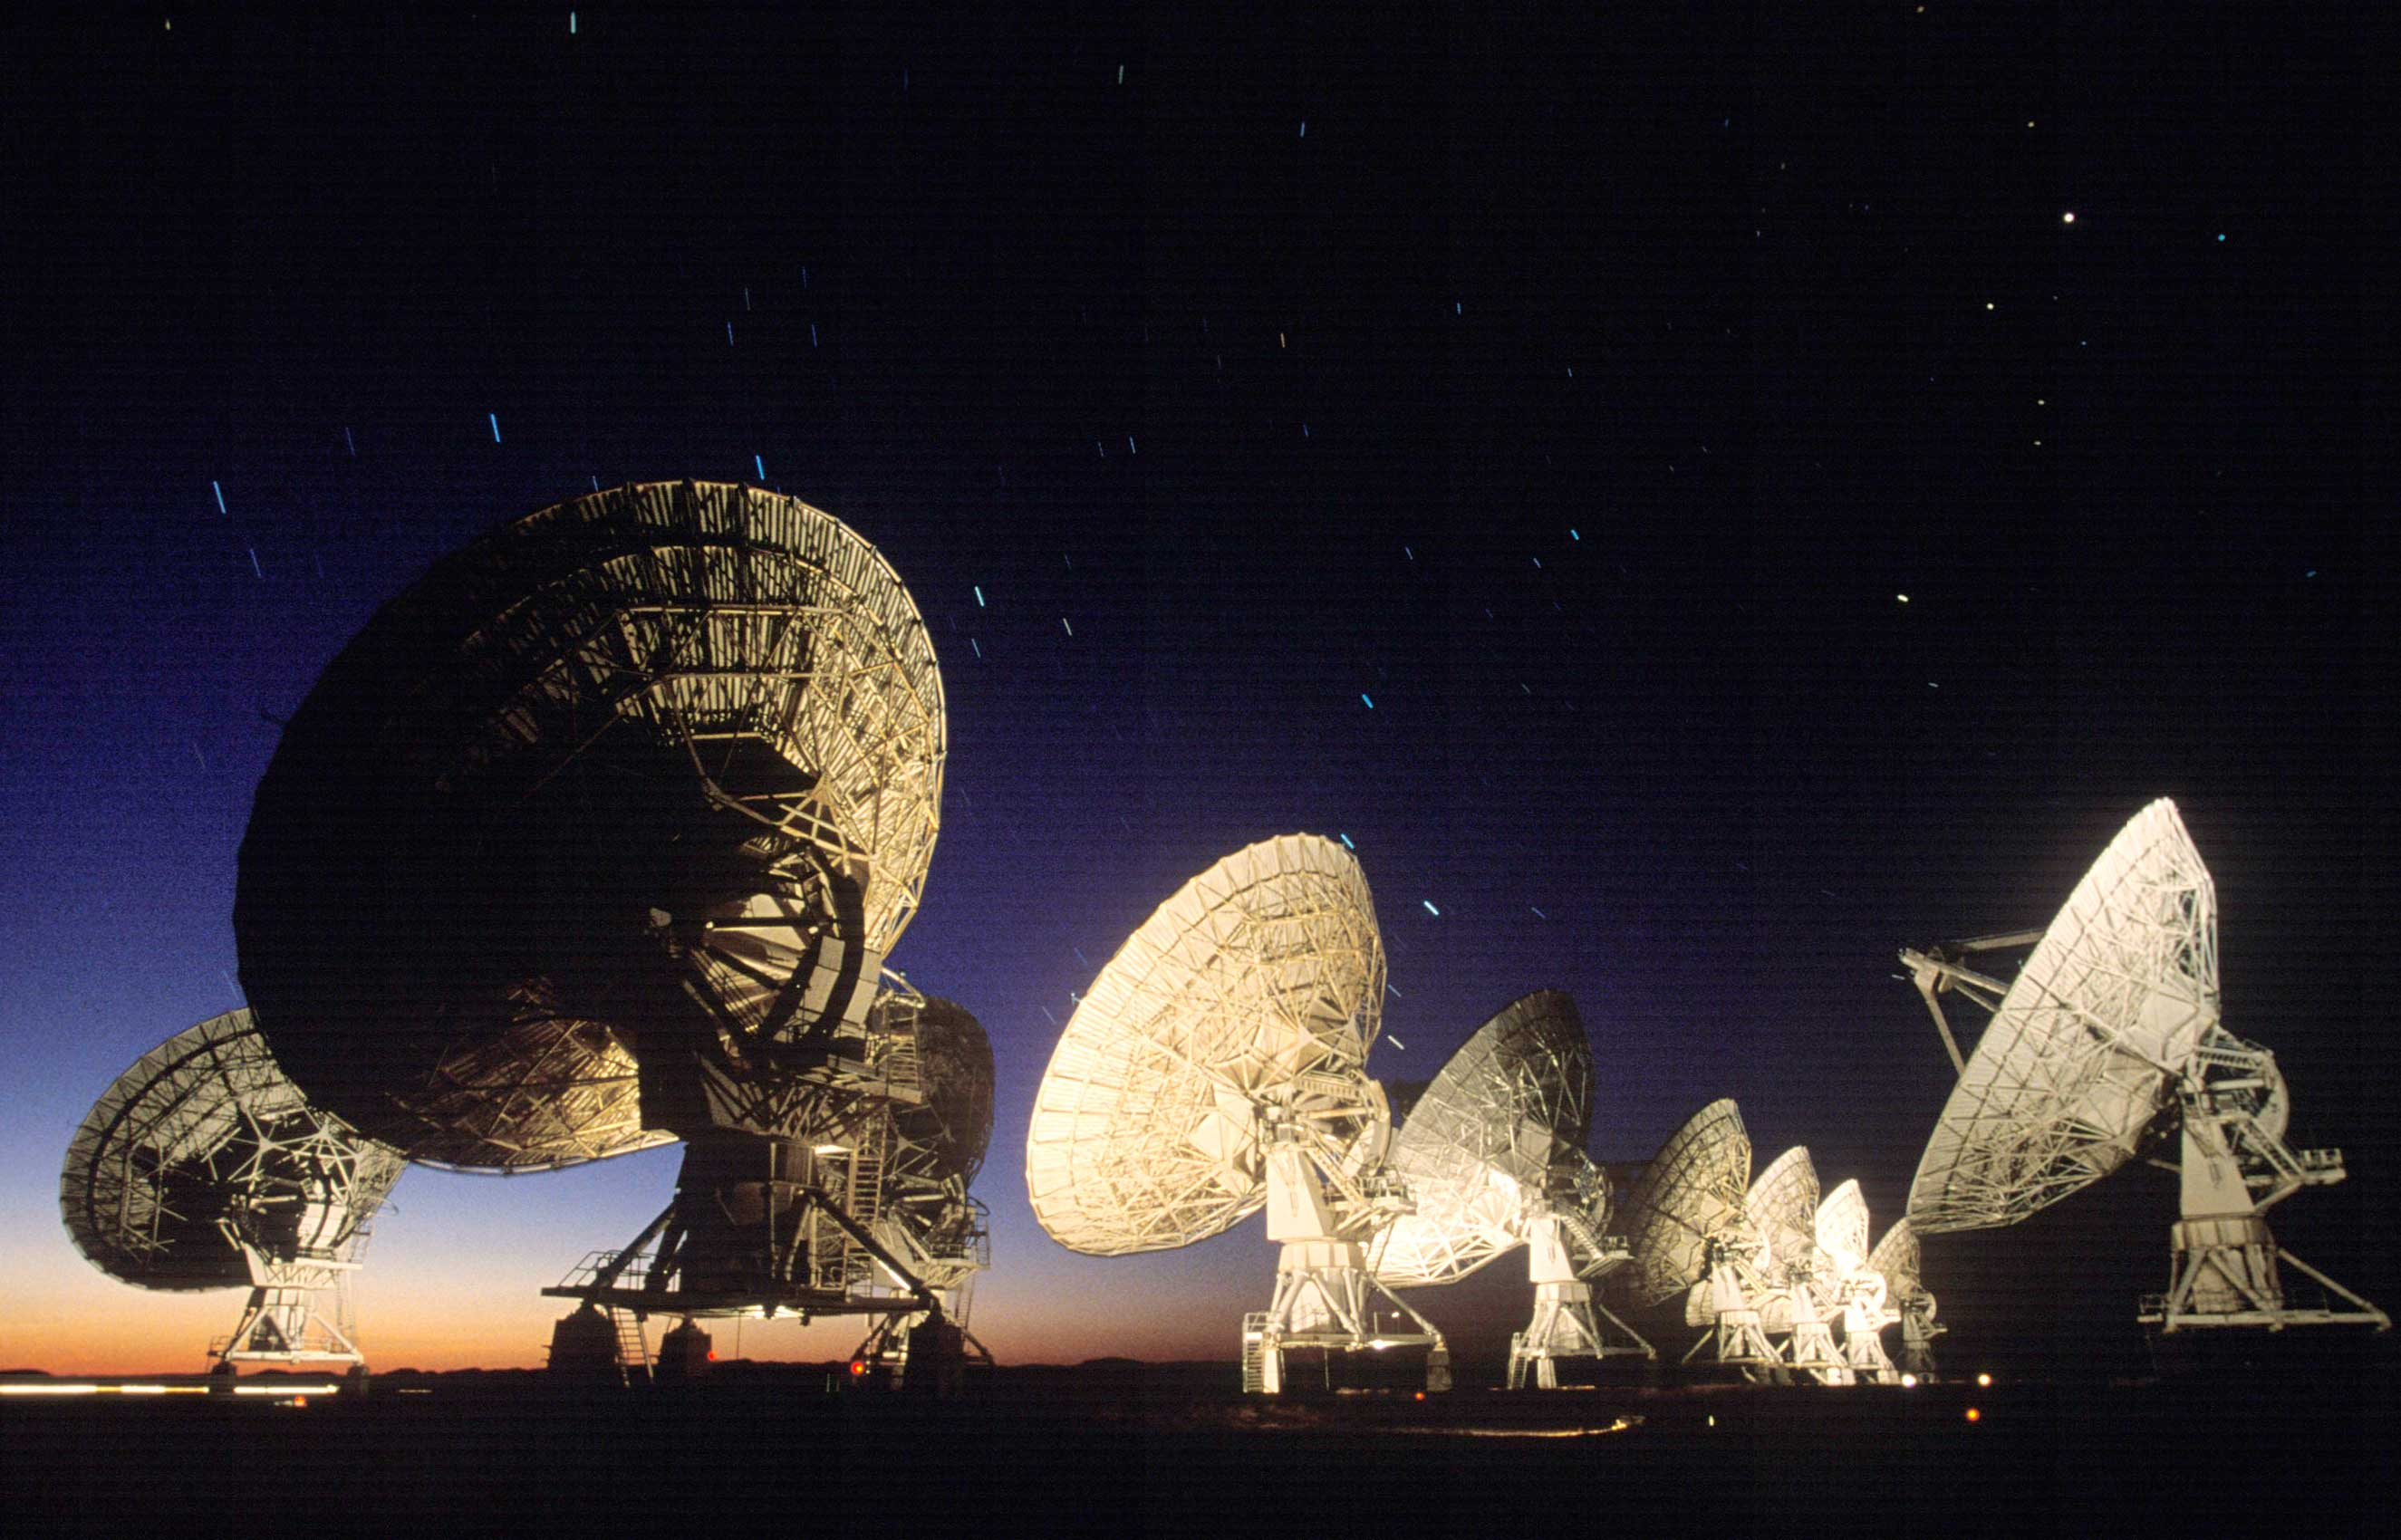 Radio telescopes like the Very Large Array in New Mexico scan the skies